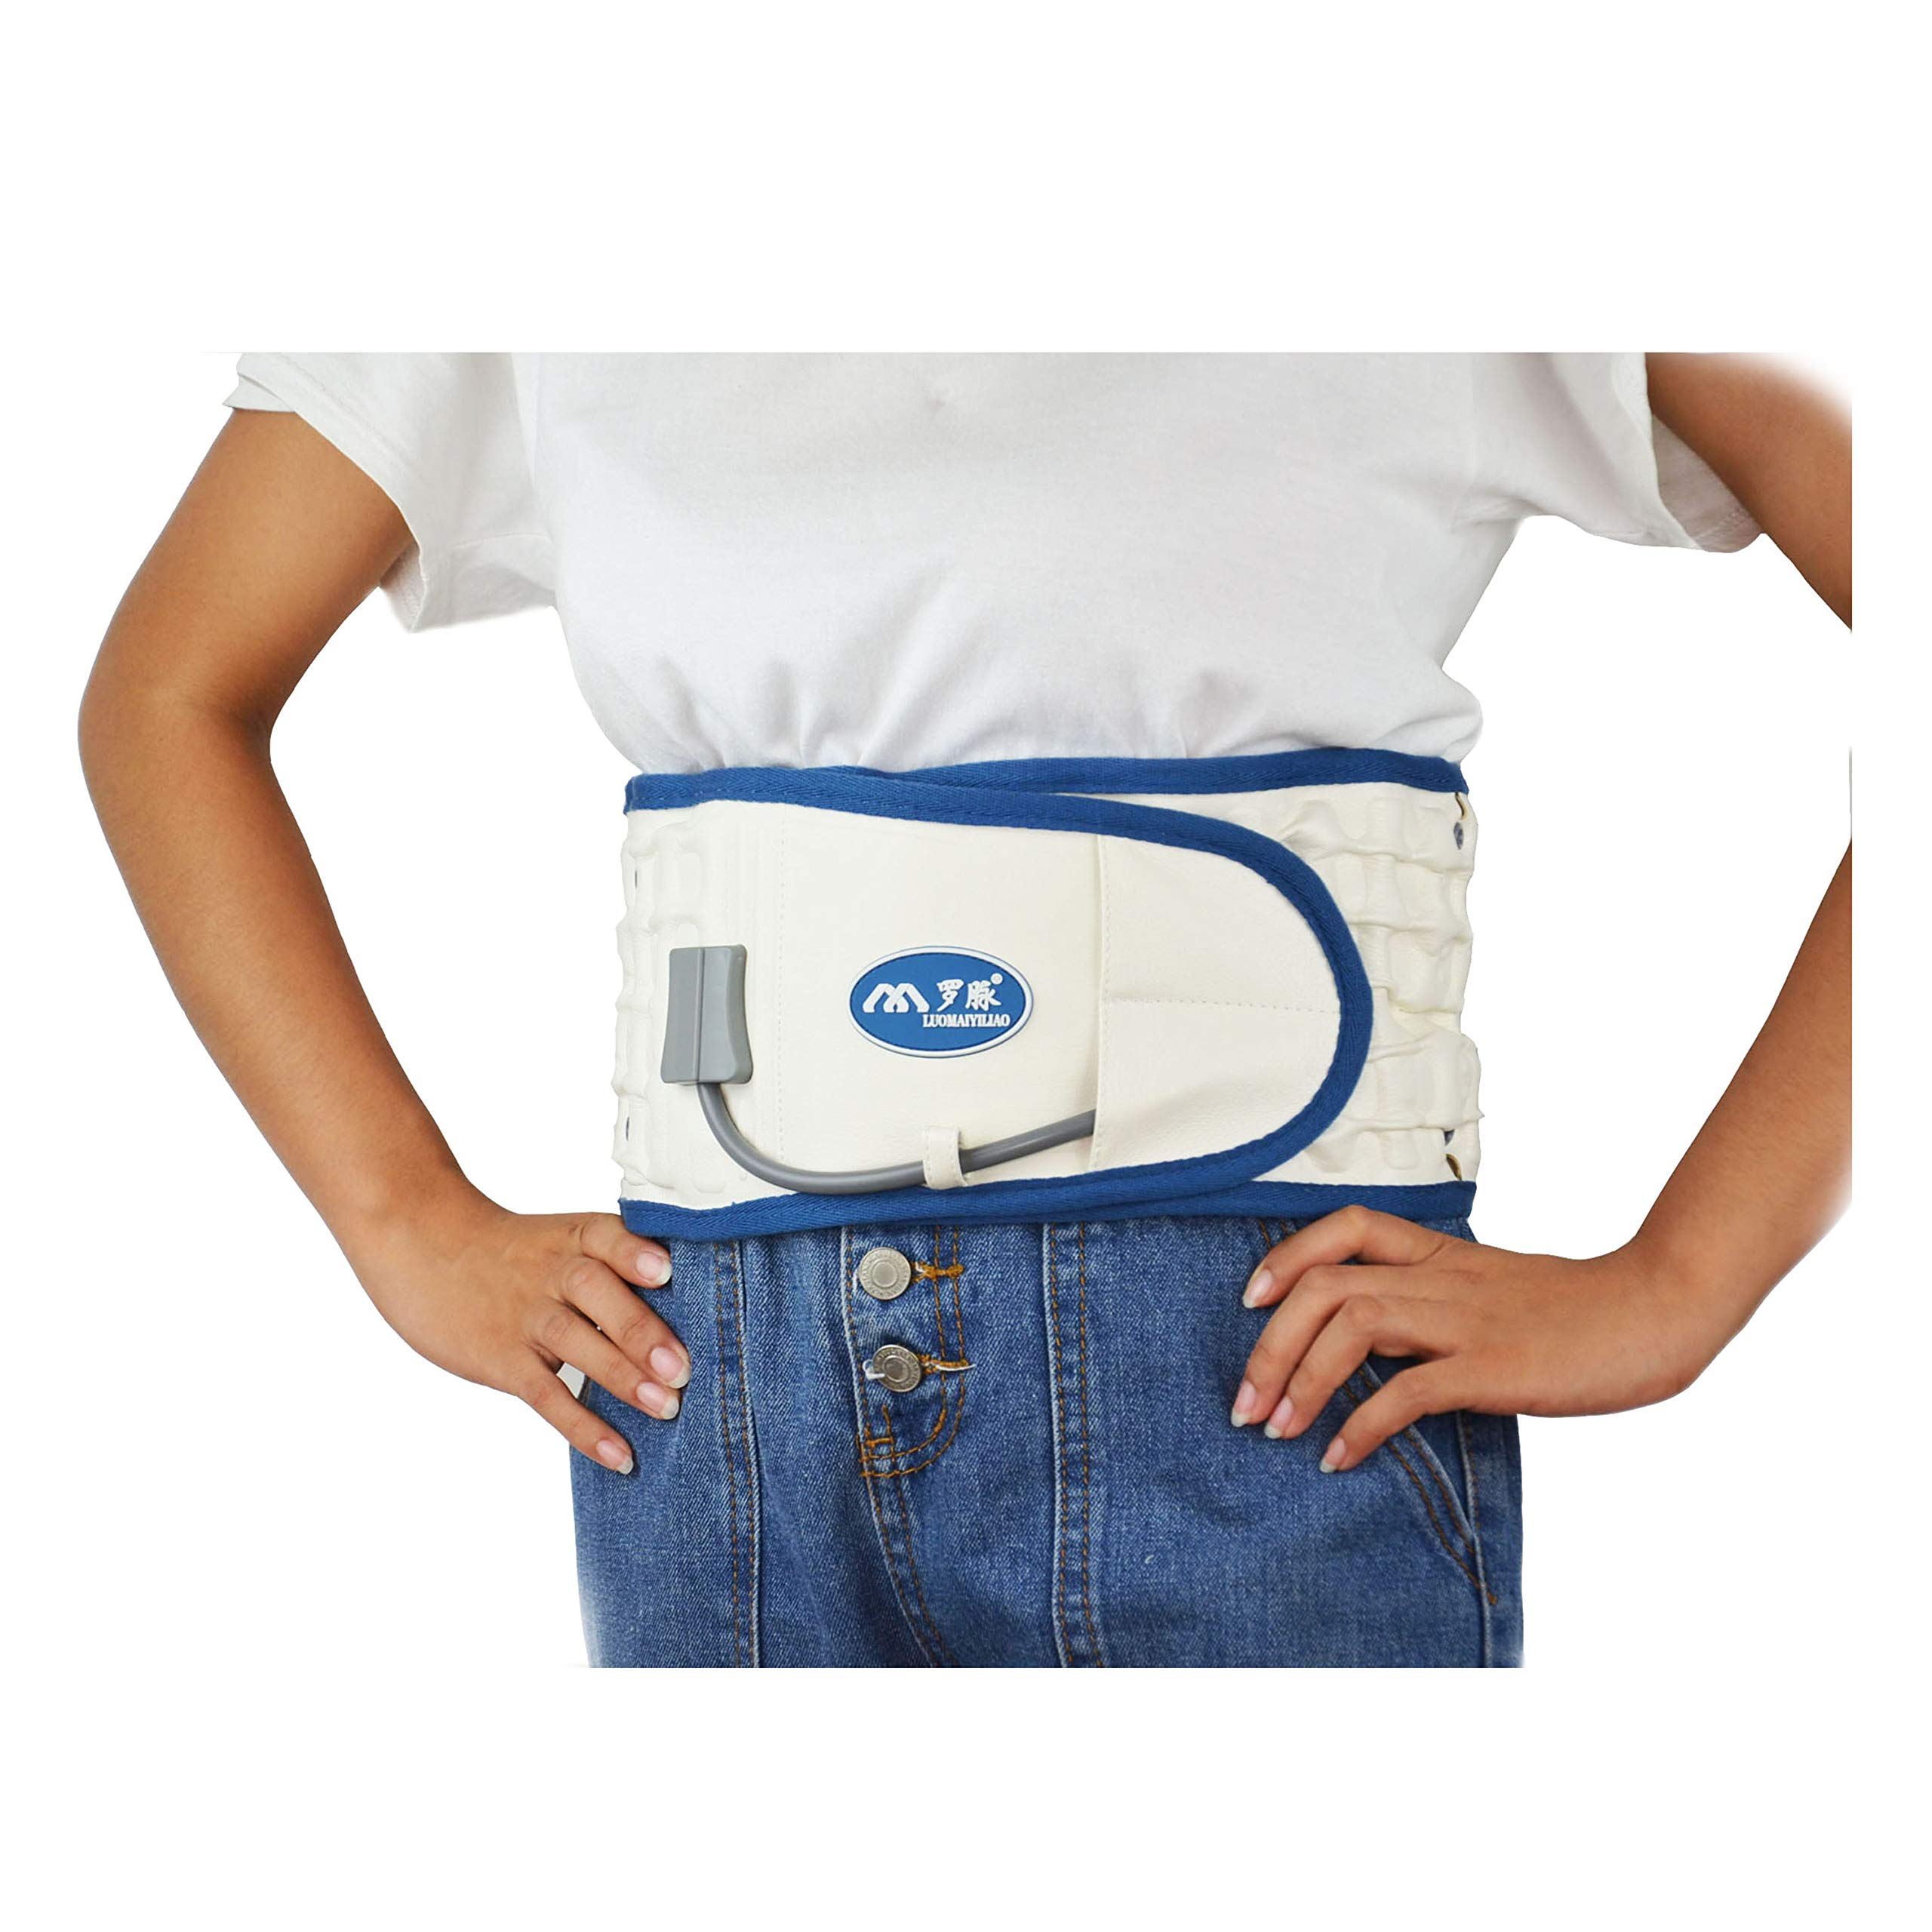 Decompression Back Belt Back Brace Back Pain Lower Lumbar Support Back Massage Inflatable Traction Device - One Size for less than 51 inches Waists. (White)